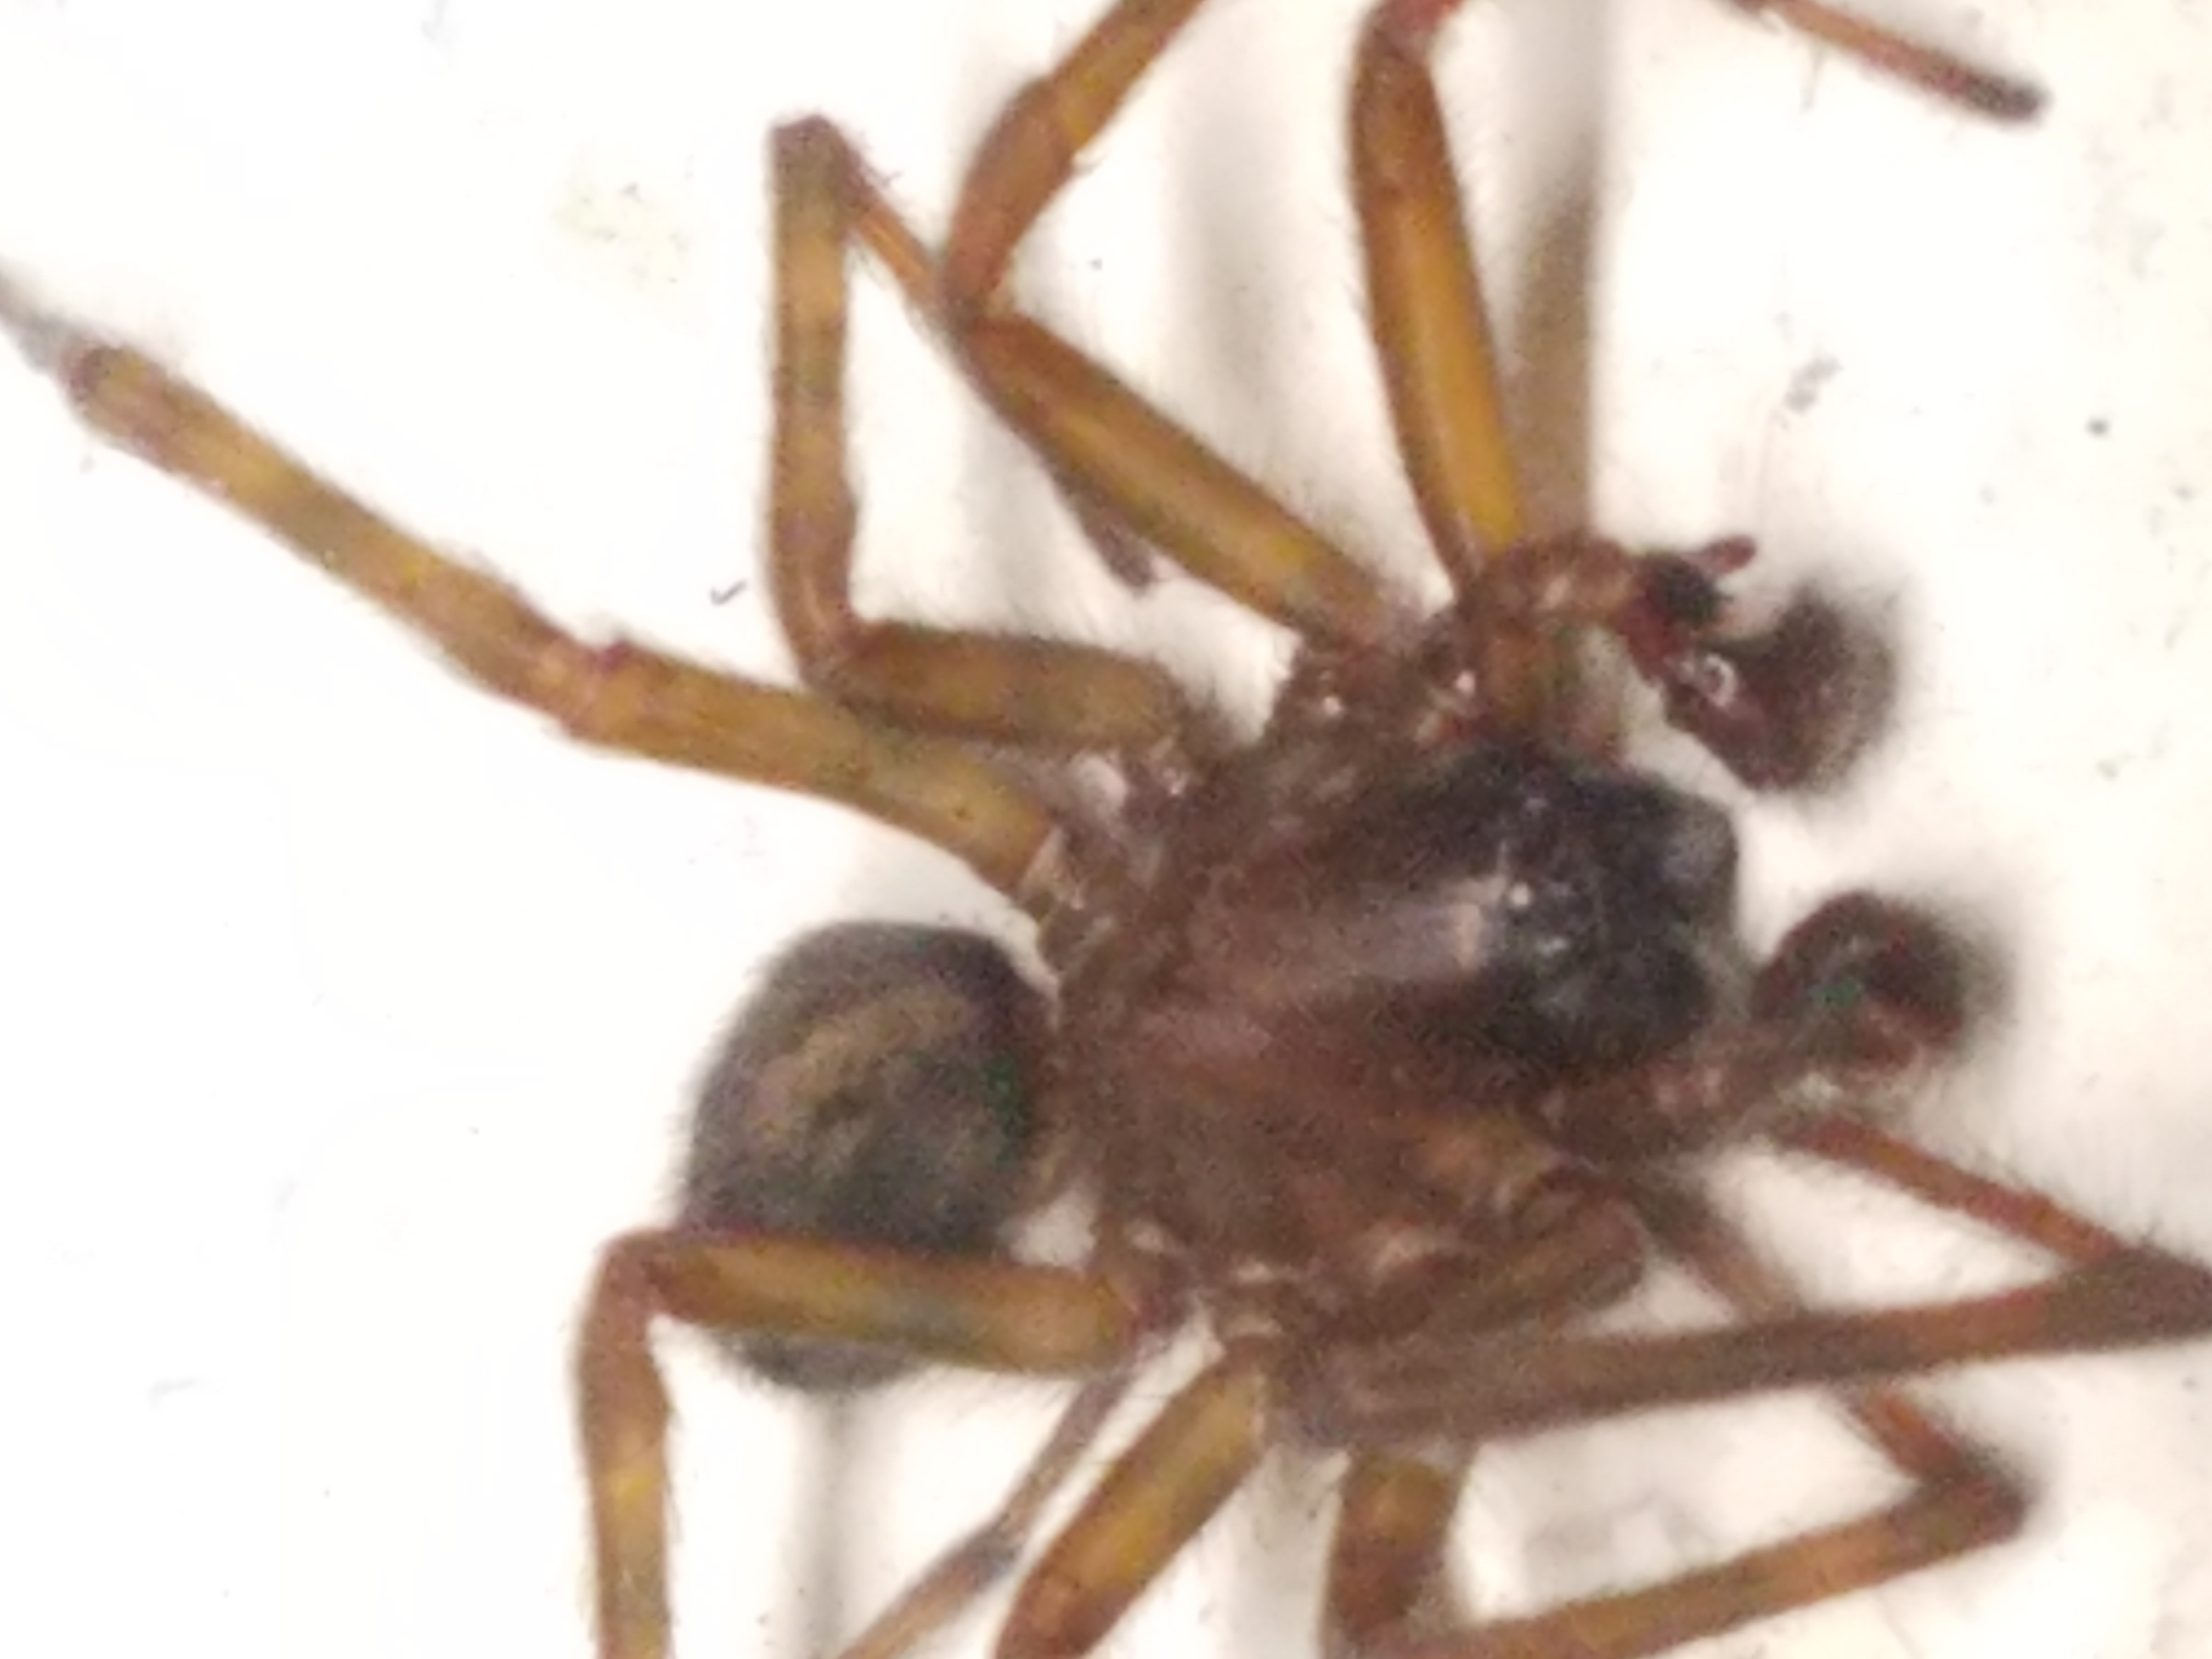 Picture of Amaurobius ferox (Black Lace-Weaver) - Male - Dorsal